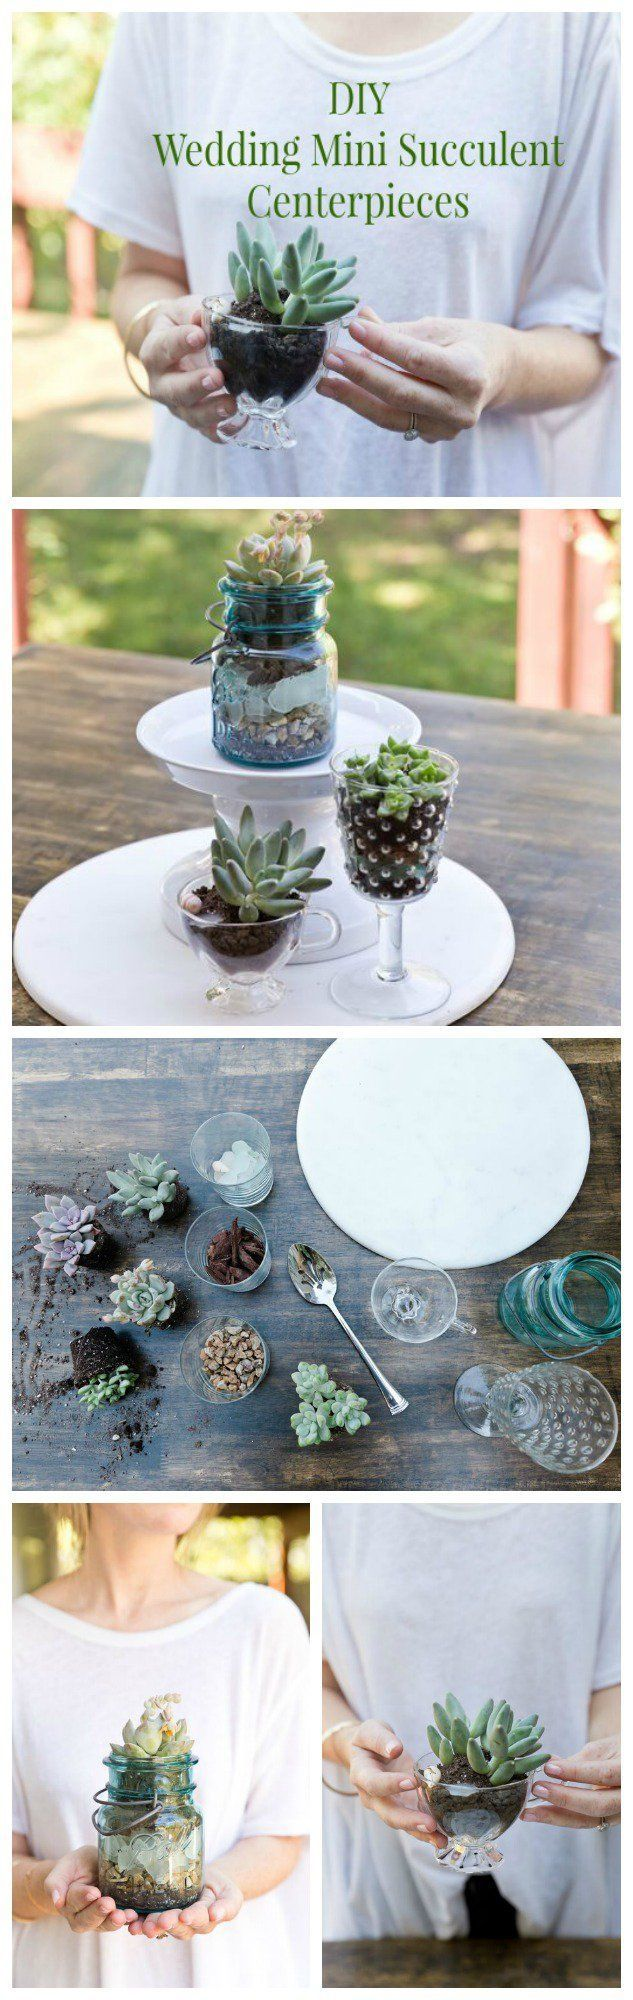 Diy Wedding Succulent Centerpieces Succulent Centerpieces